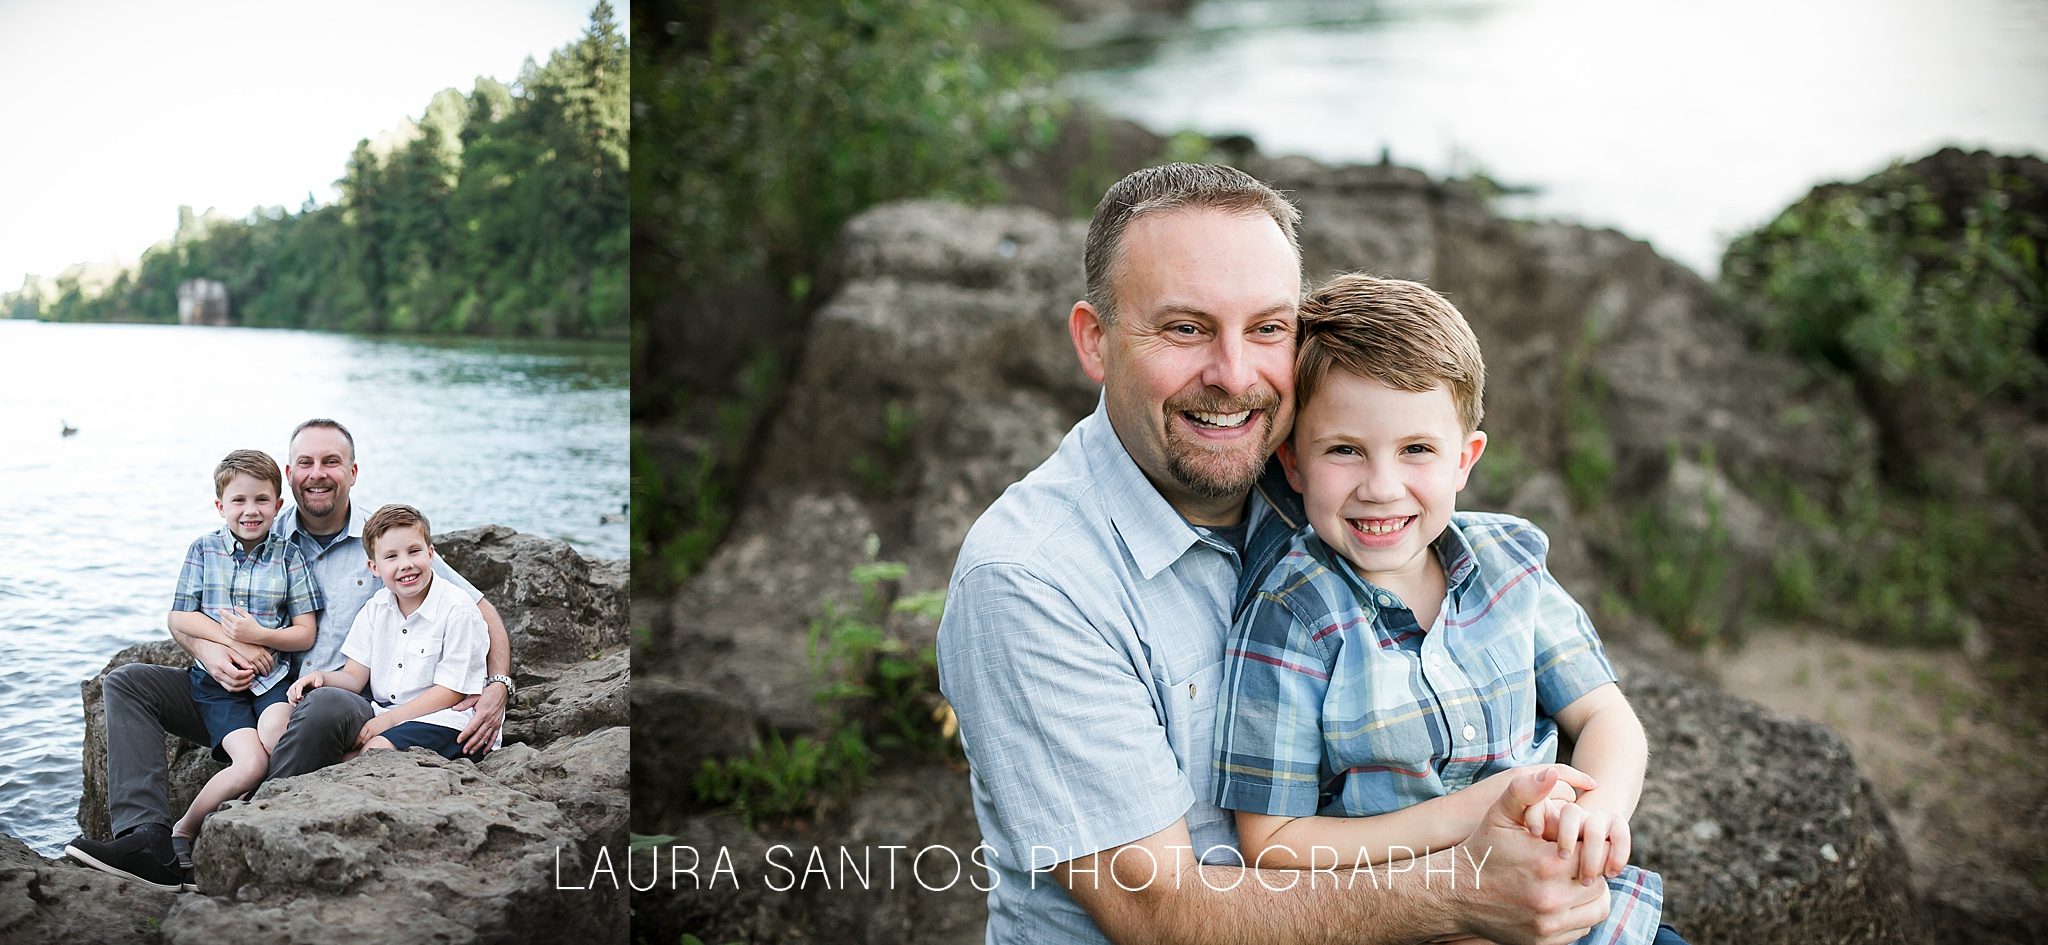 Laura Santos Photography Portland Oregon Family Photographer_1018.jpg